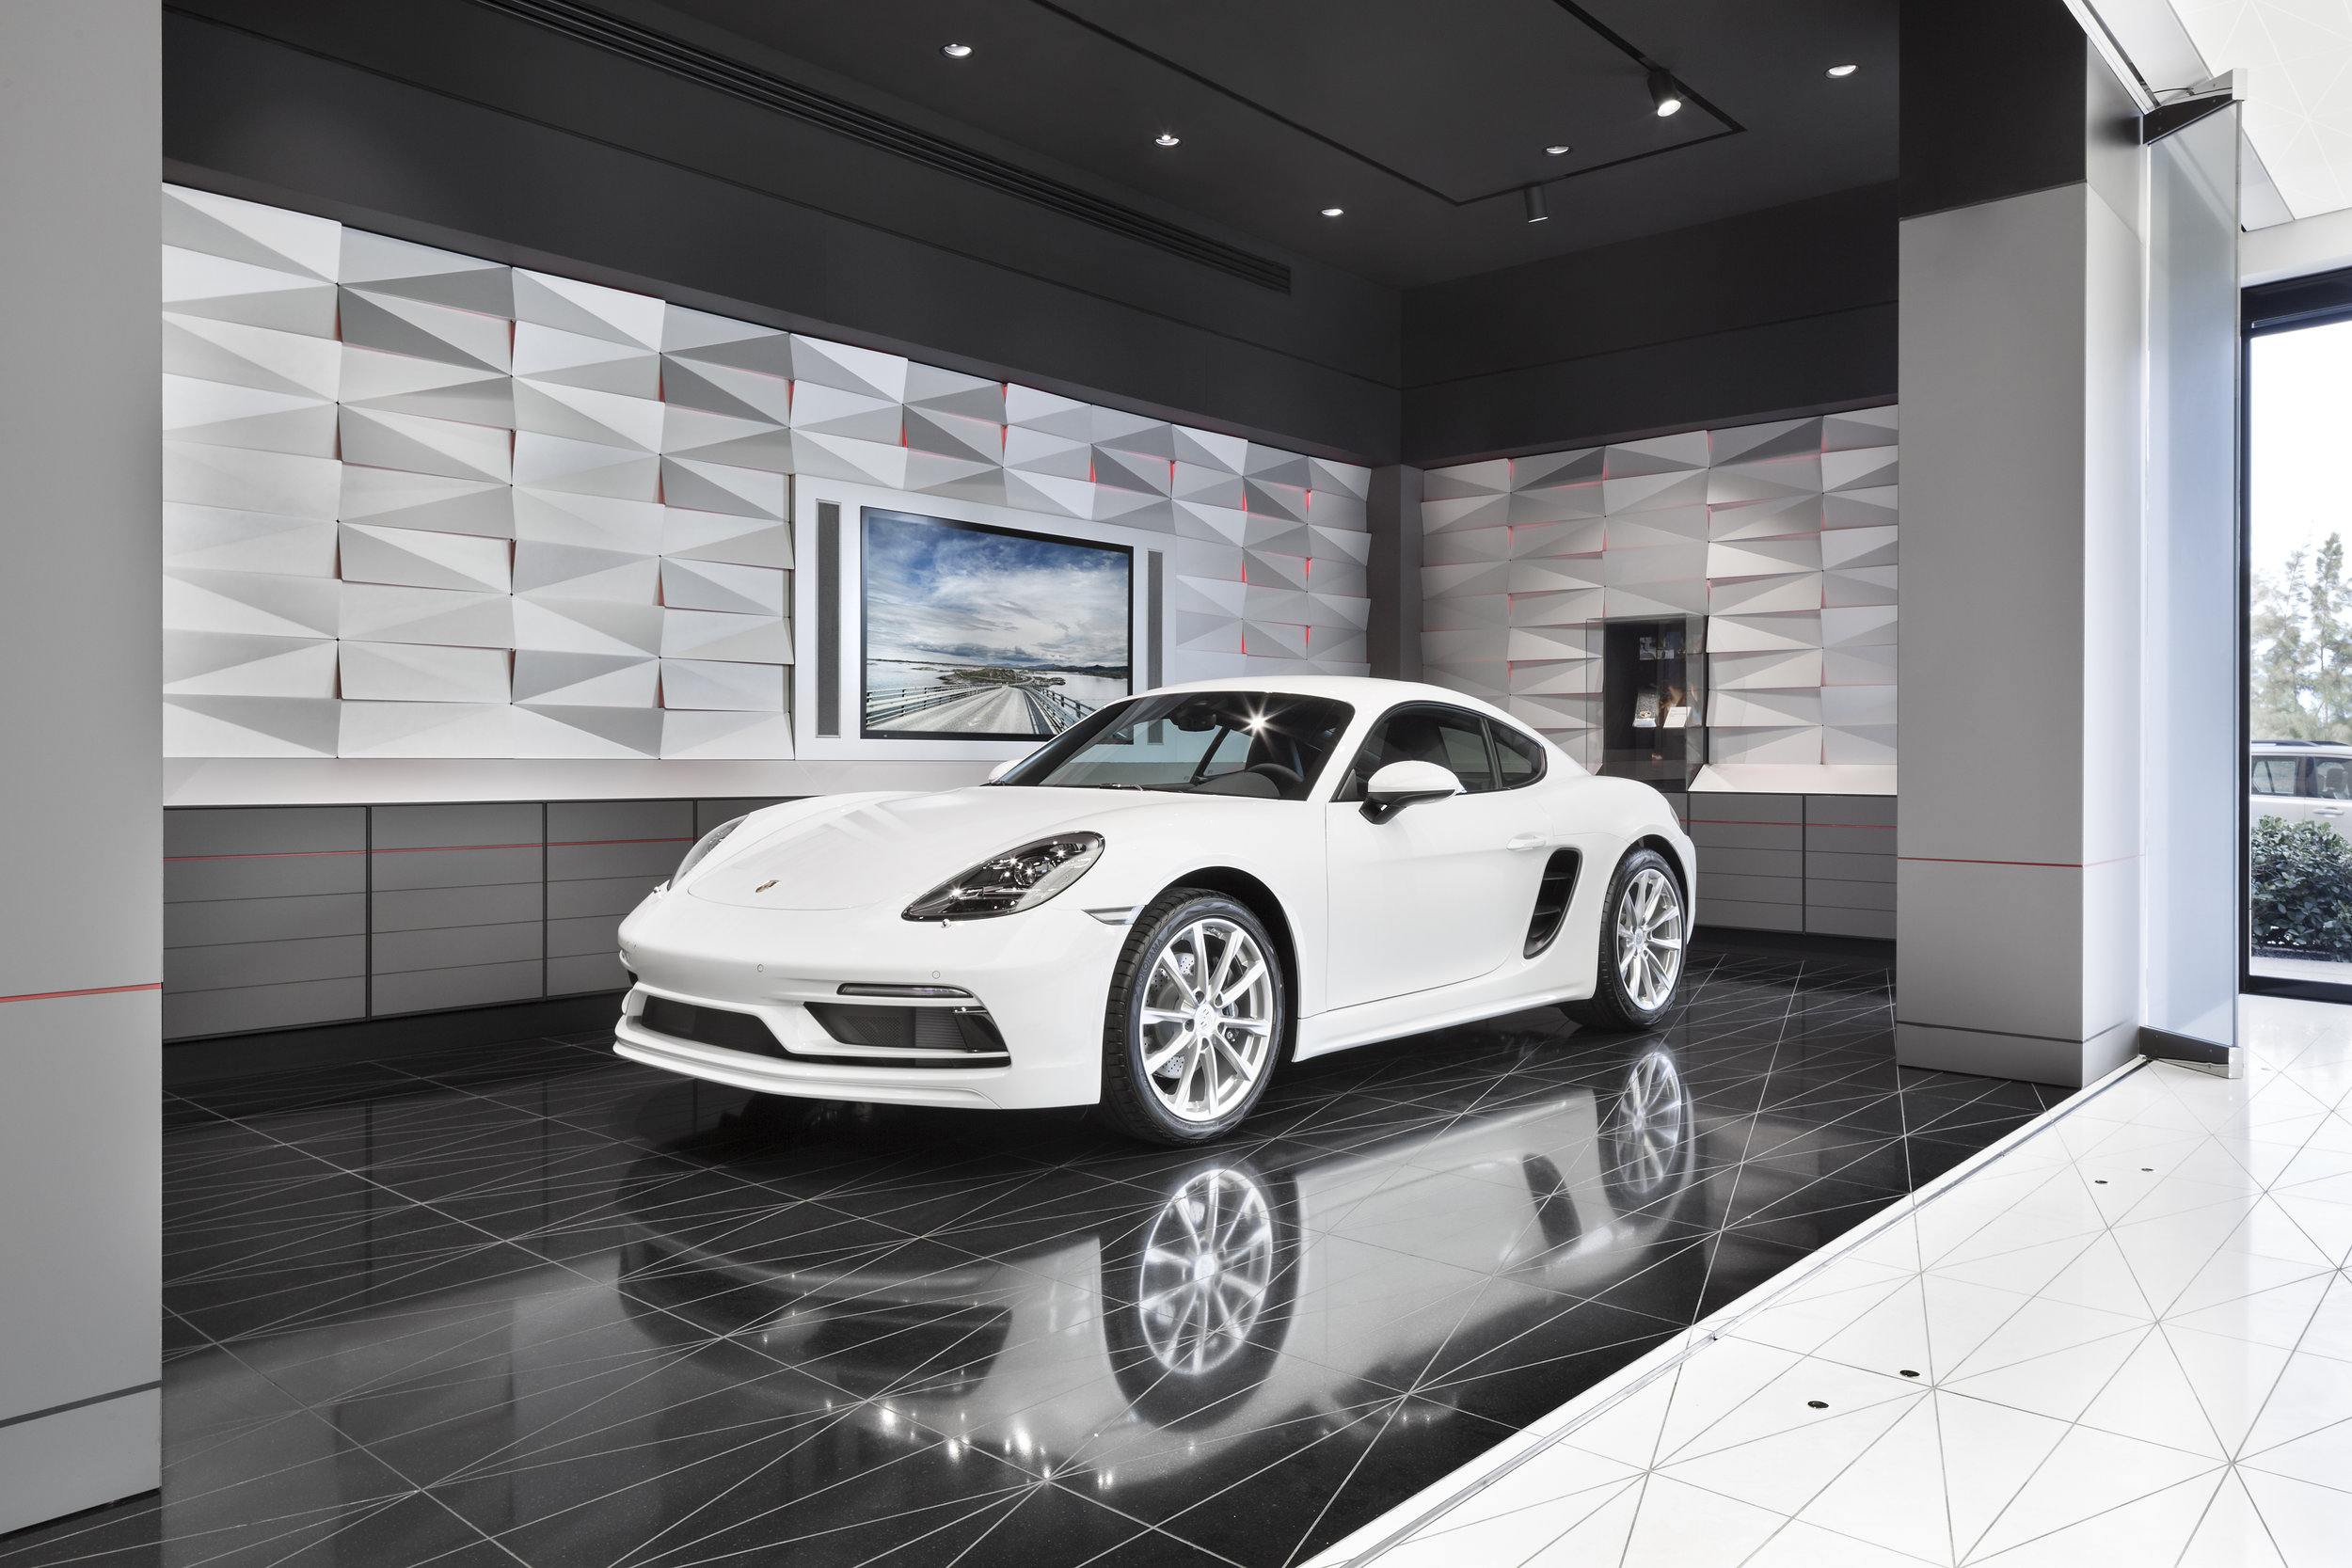 porsche-studio_retail-interior-design_coordination-berlin_09a.jpg